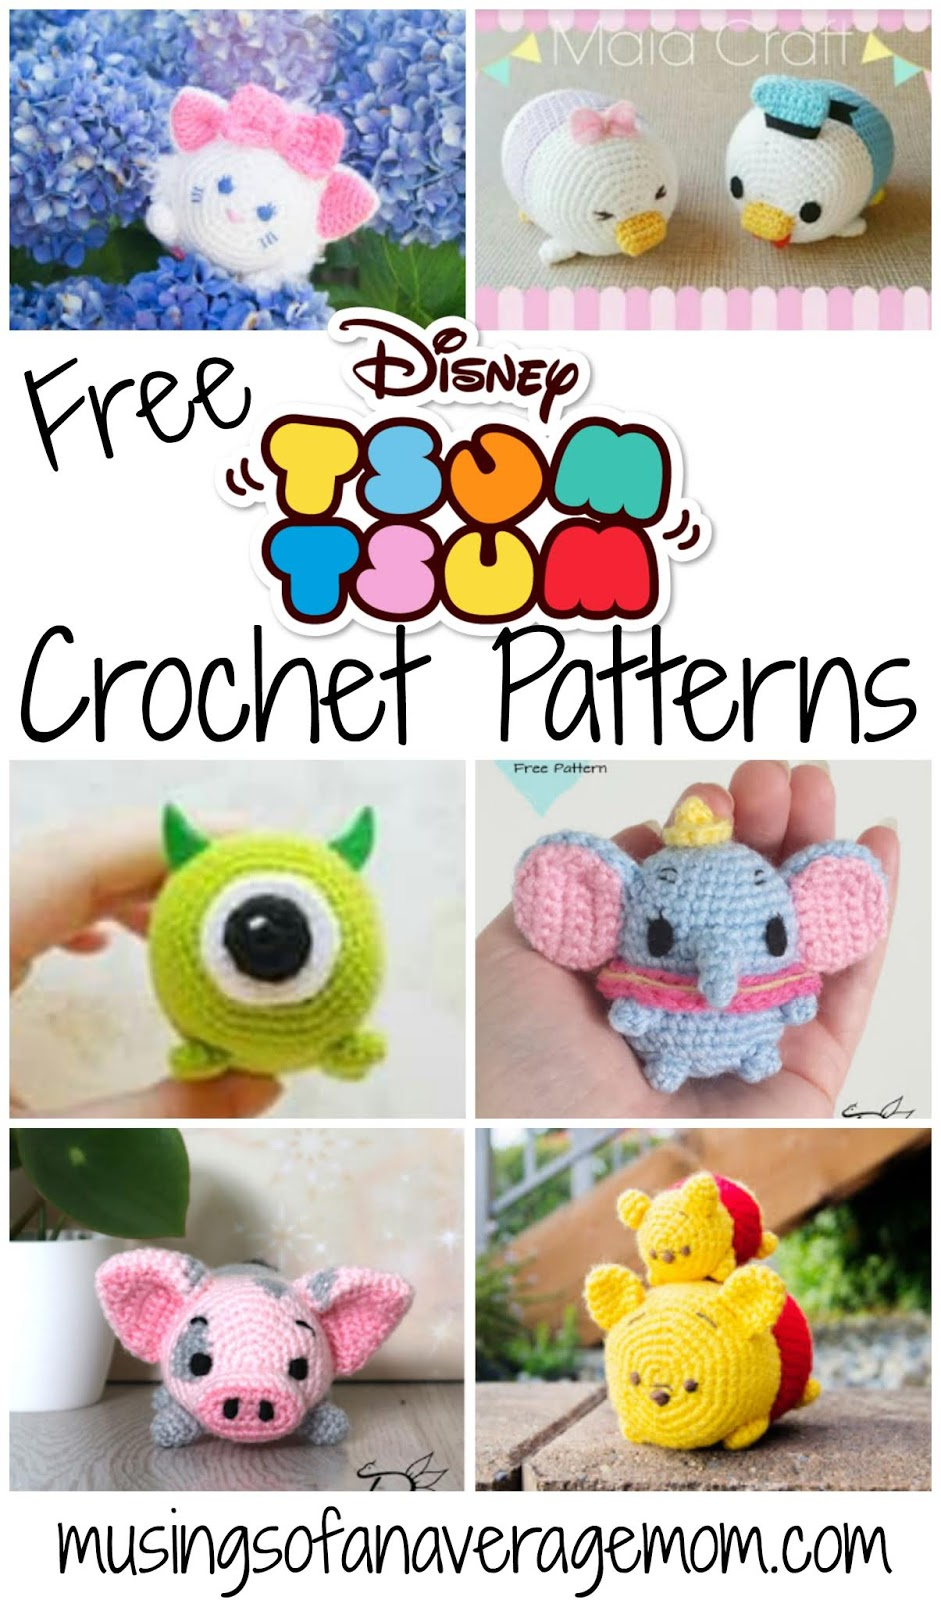 20 Stuffed Animal Crochet Ideas | Crochet toys patterns, Crochet ... | 1600x941